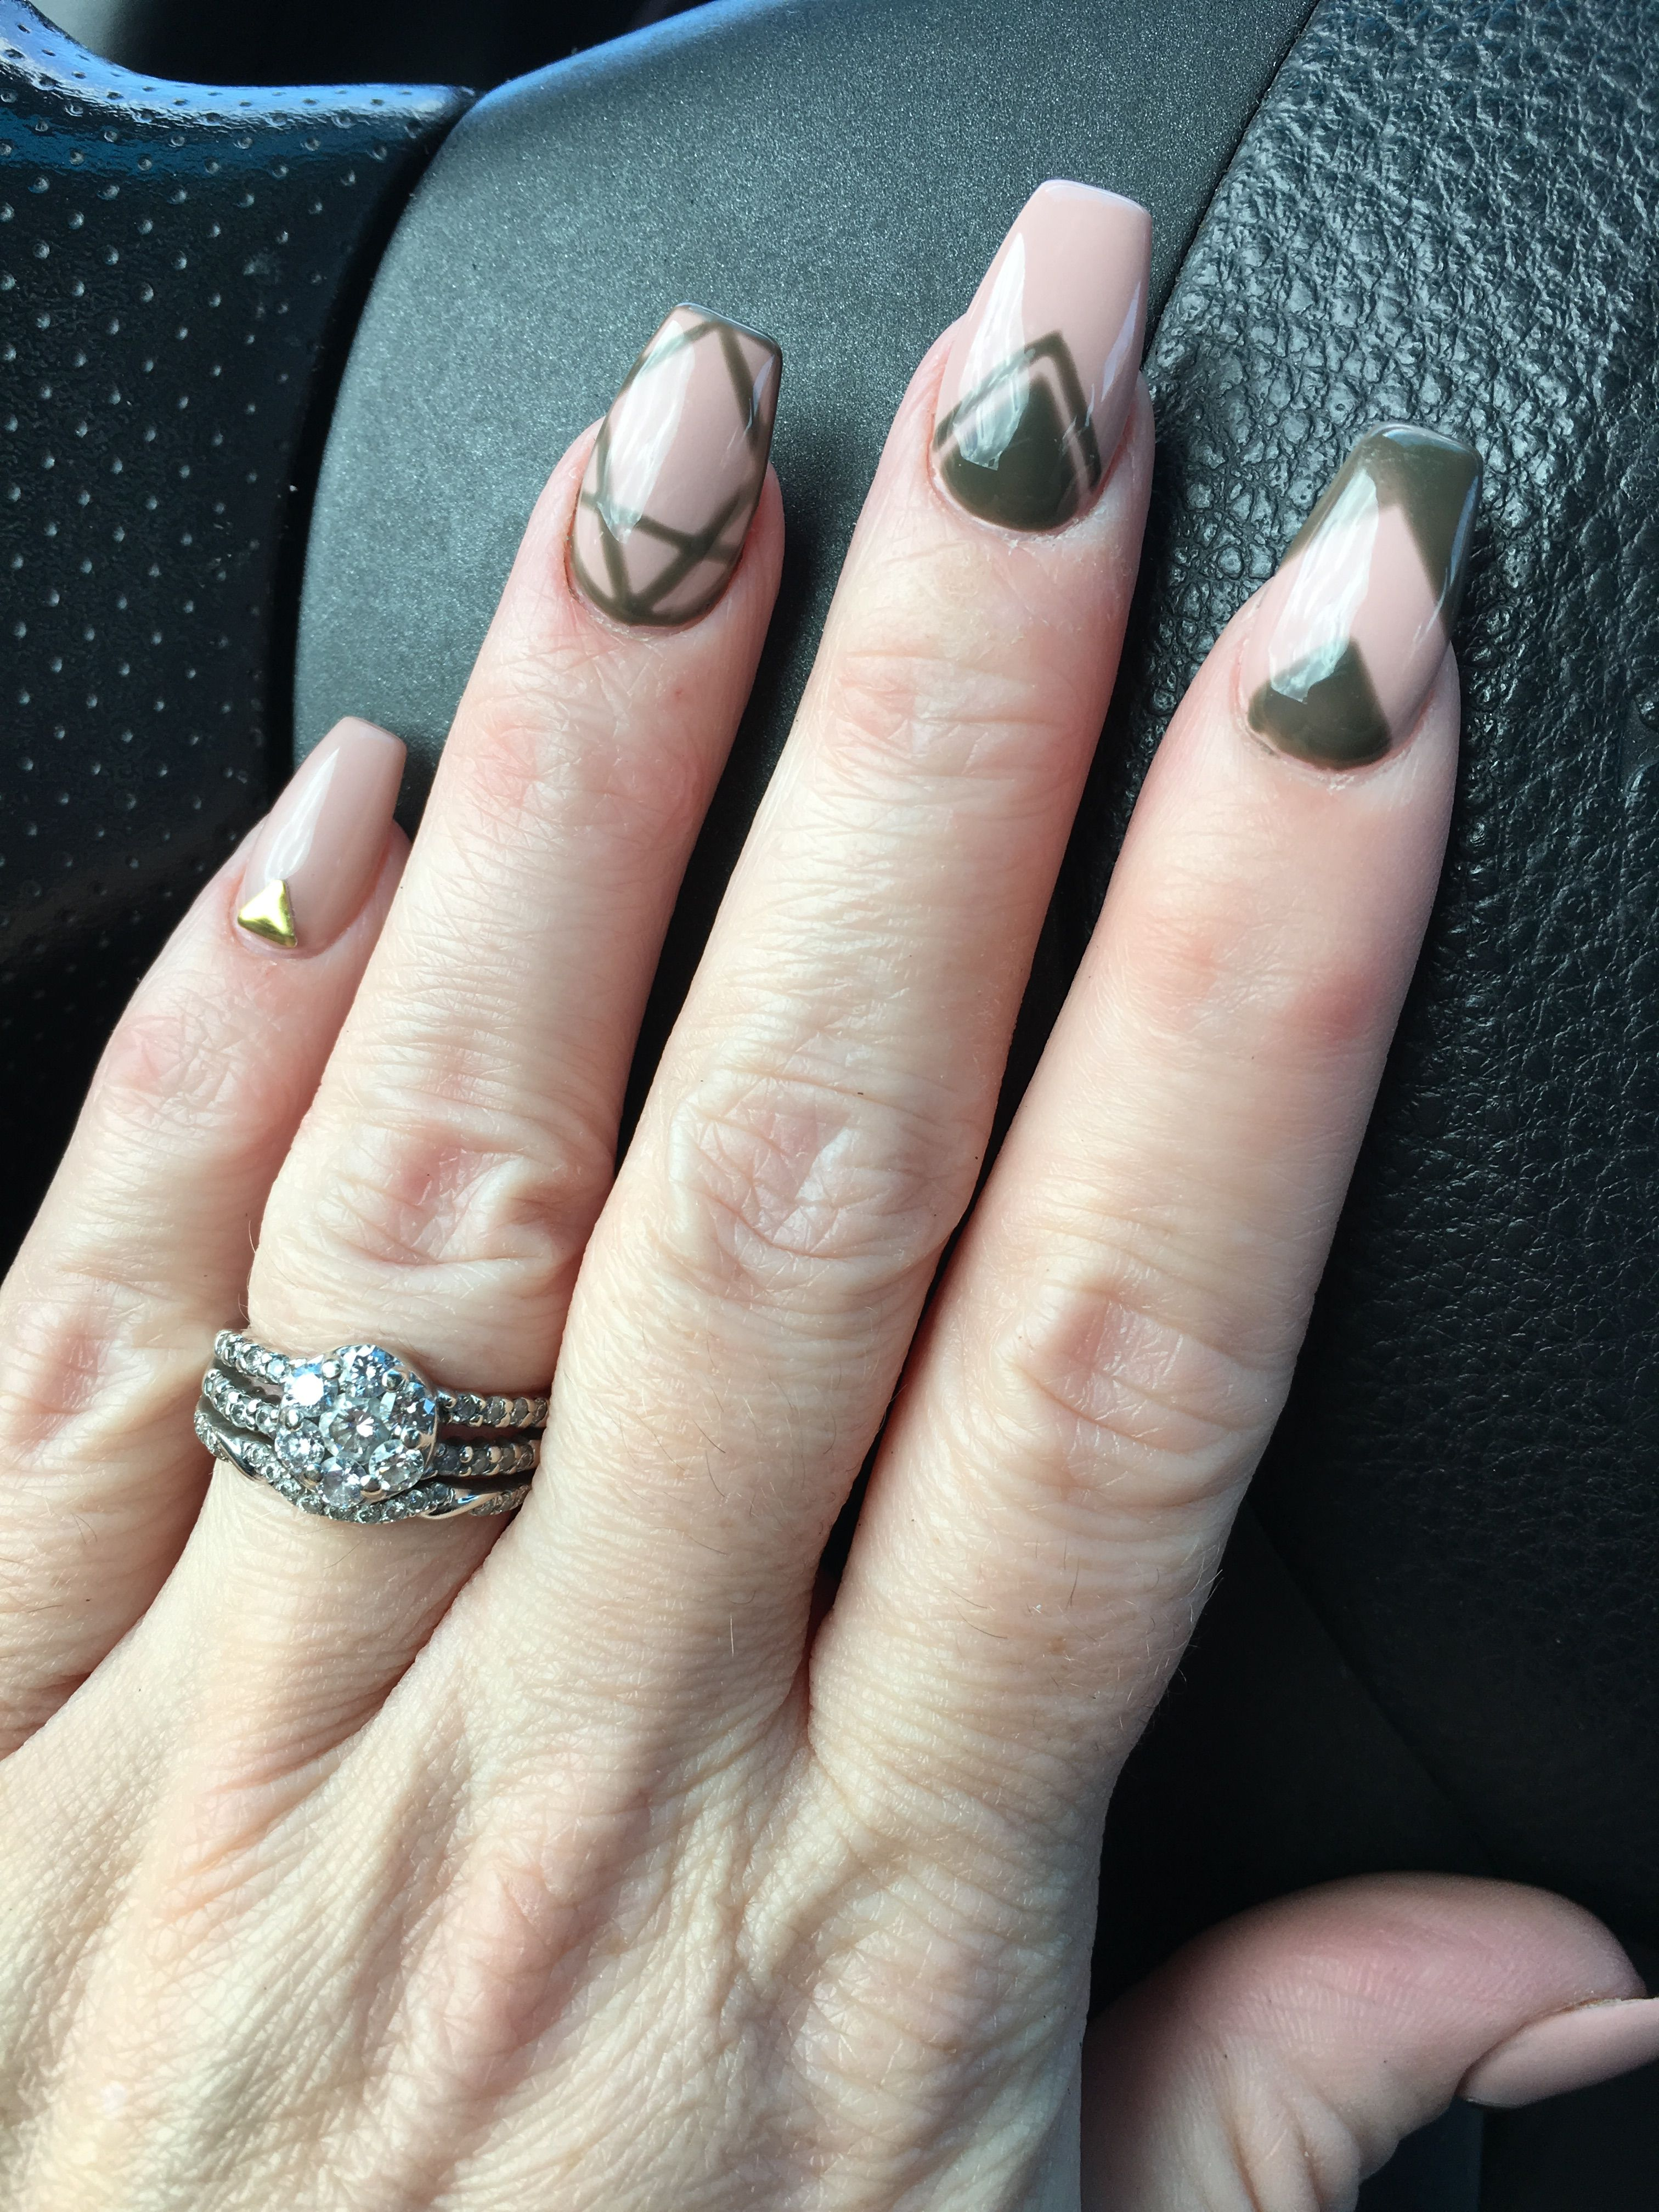 Olive Green And Tan With Design Coffin Nails Nail Designs Nails